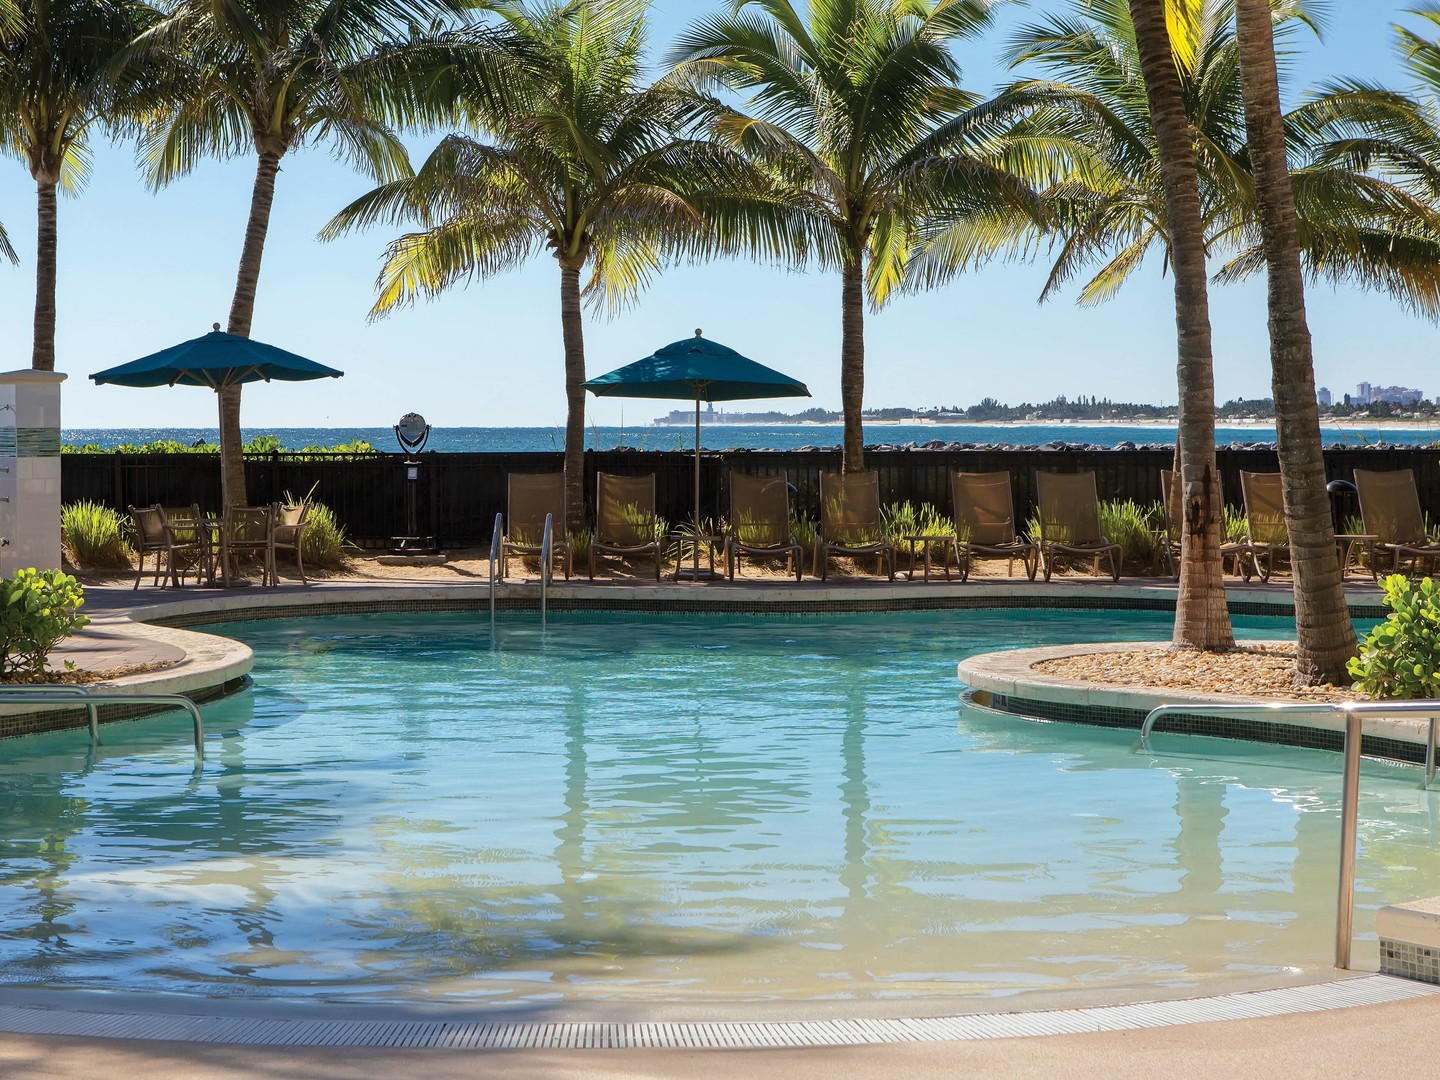 Marriott's Ocean Pointe Main Pool. Marriott's Ocean Pointe is located in Palm Beach Shores, Florida United States.